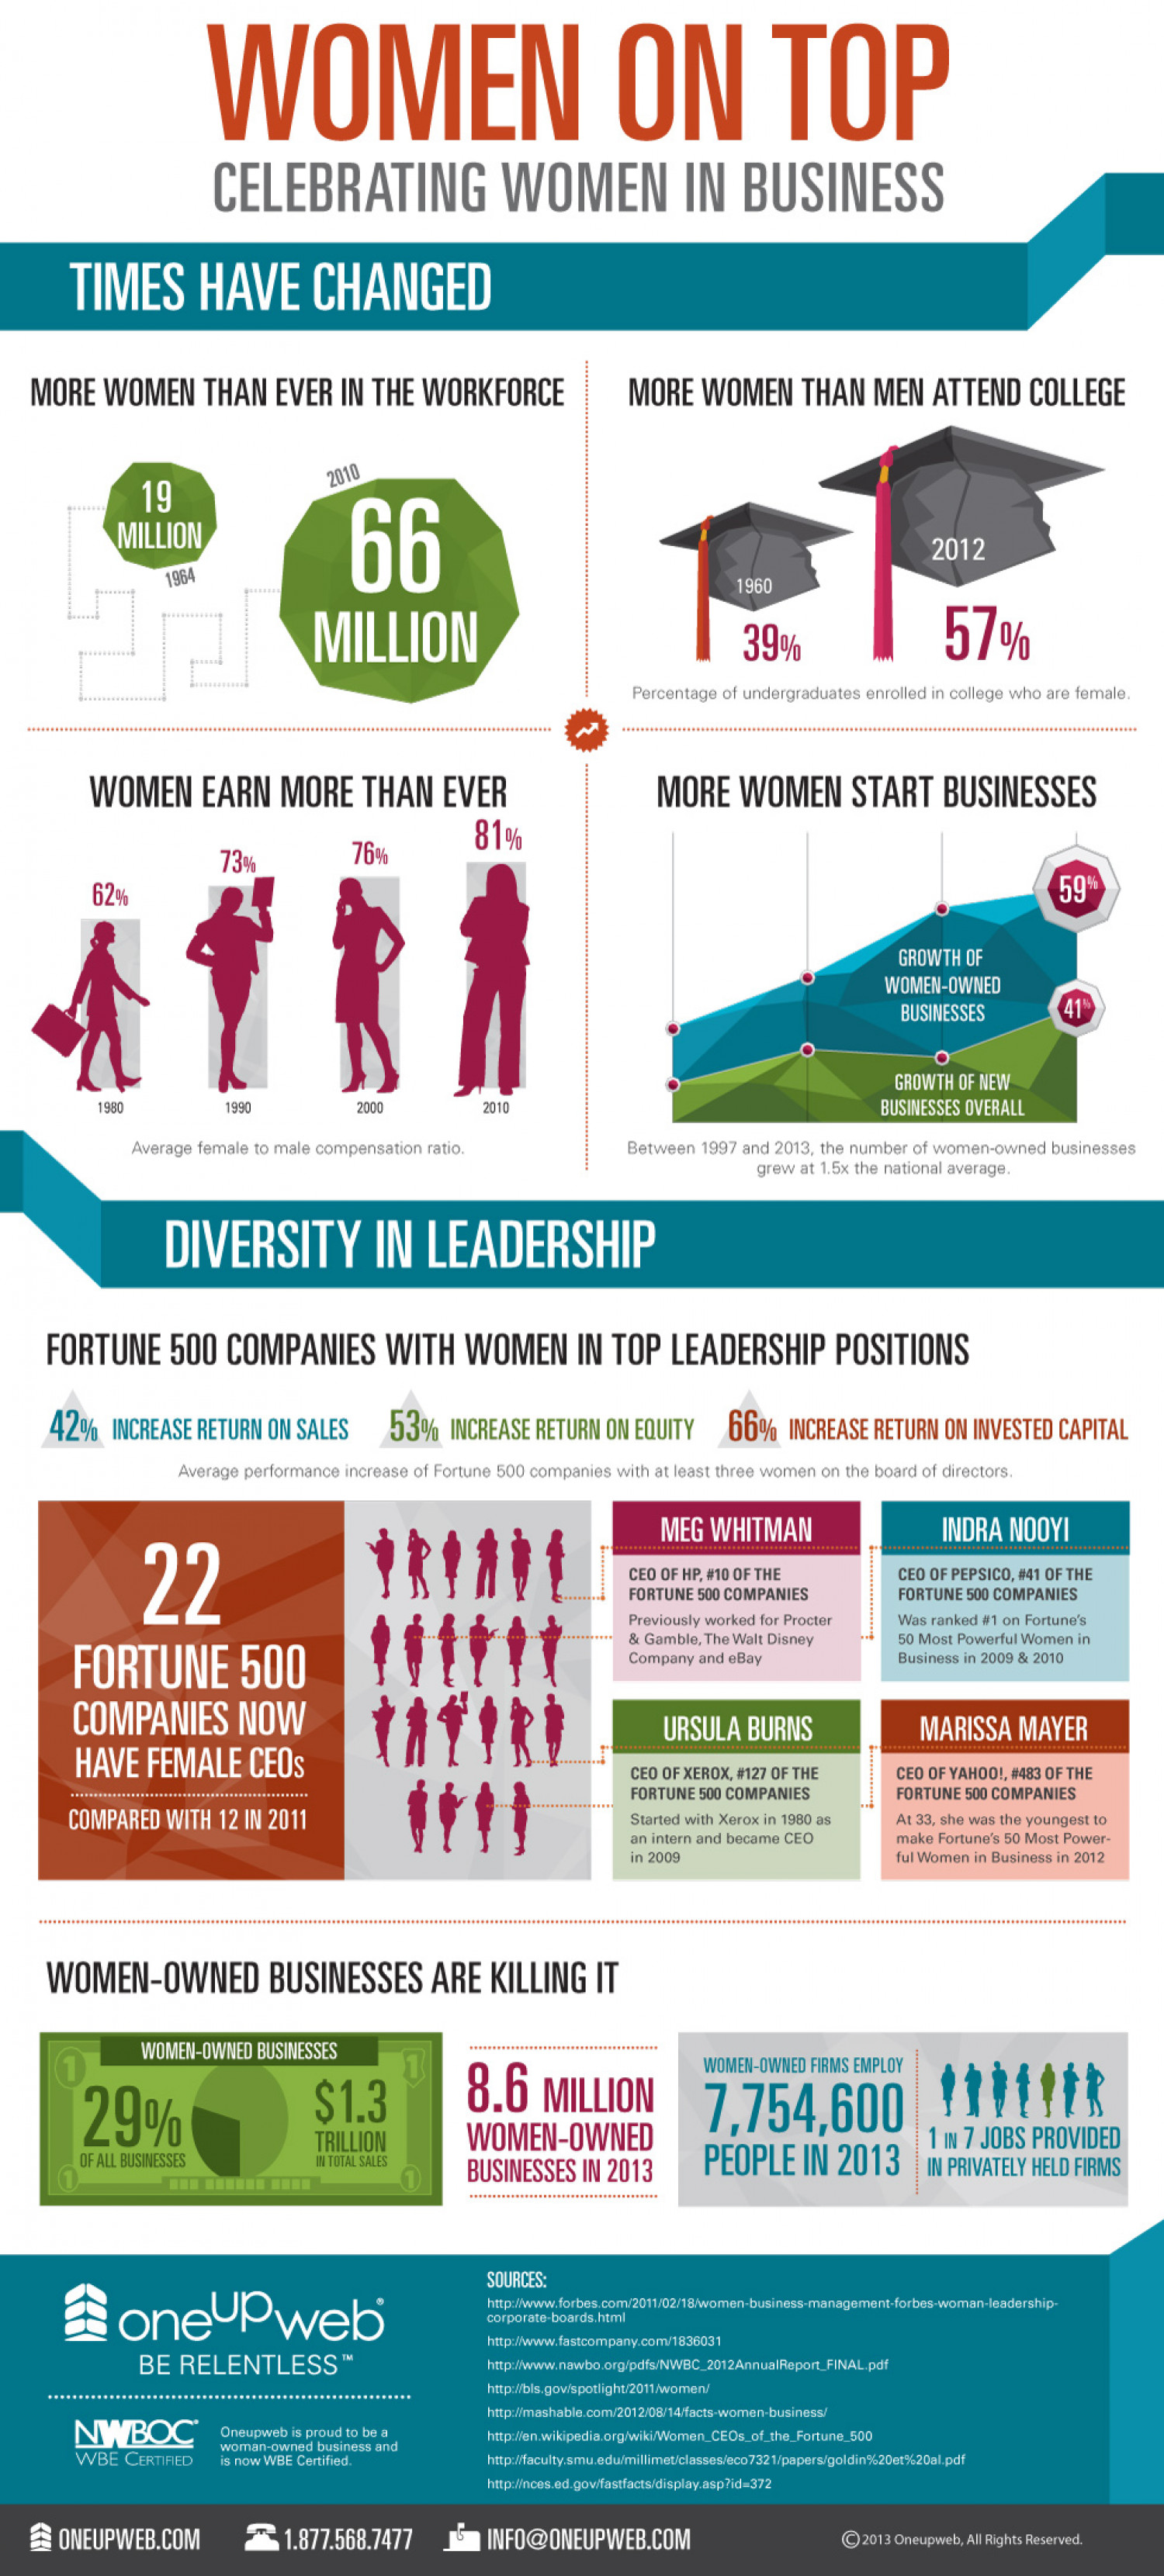 Women on Top - Celebrating Women in Business Infographic